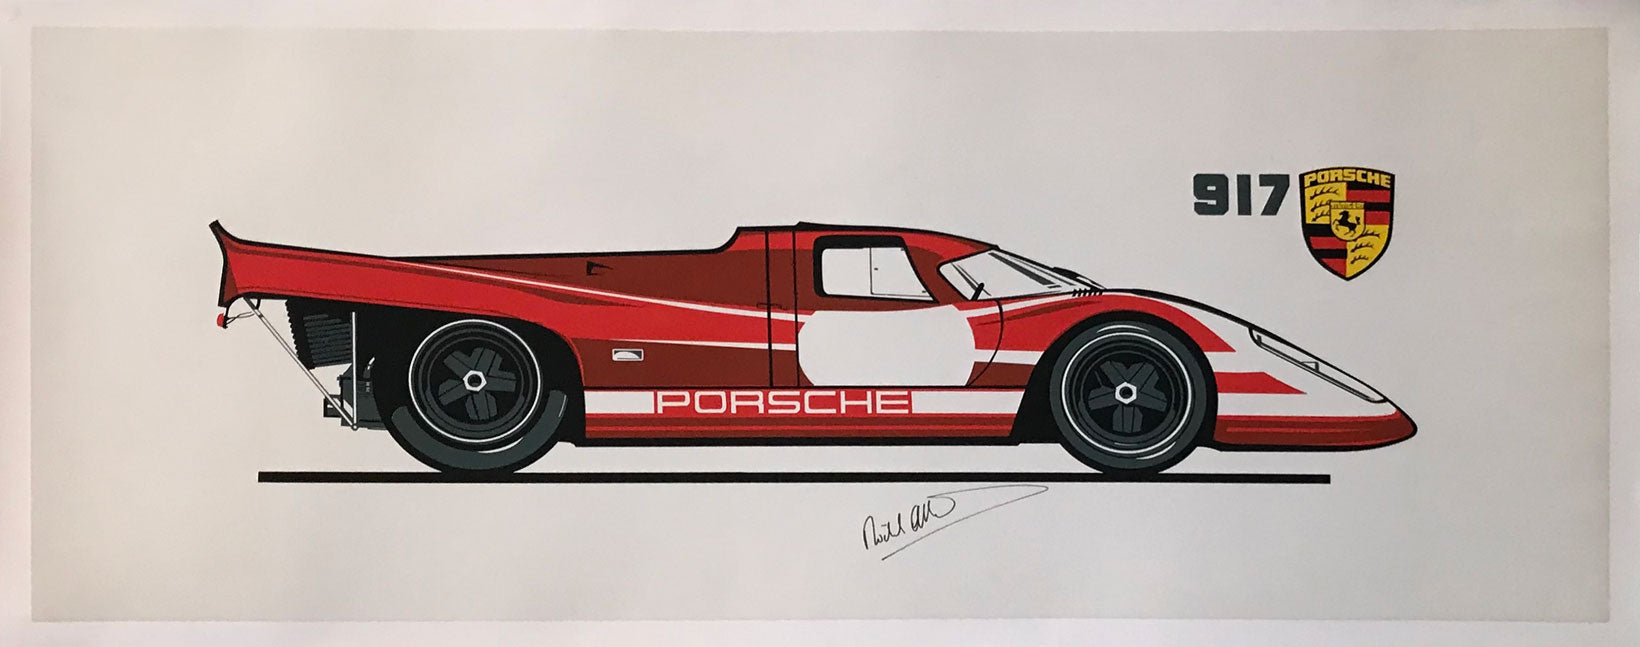 Porsche 917K print of the 1970 24 Hours of Le Mans winner, autographed - $450.00